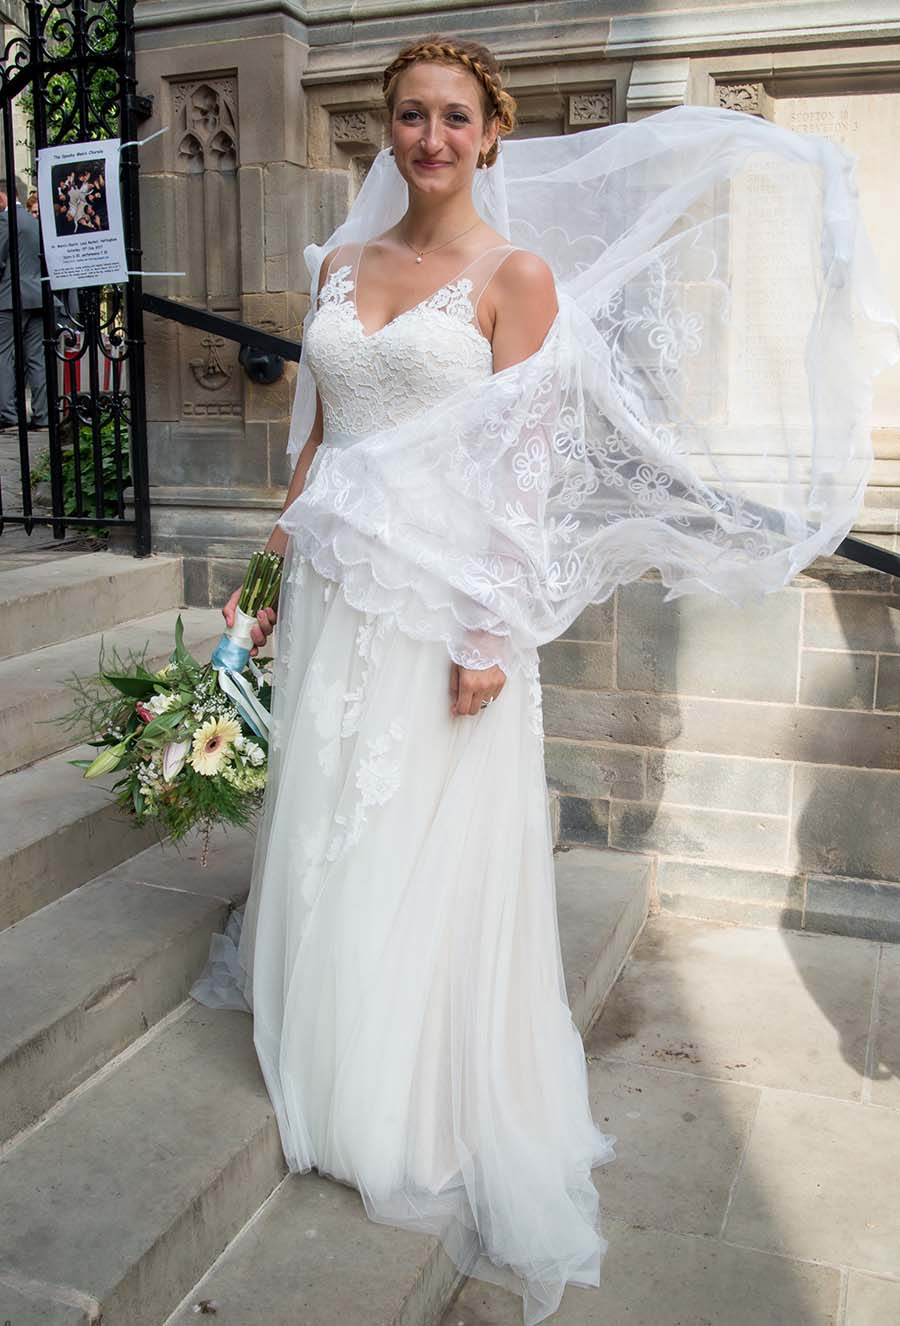 Wedding Dress From Shade Bridal Nottingham